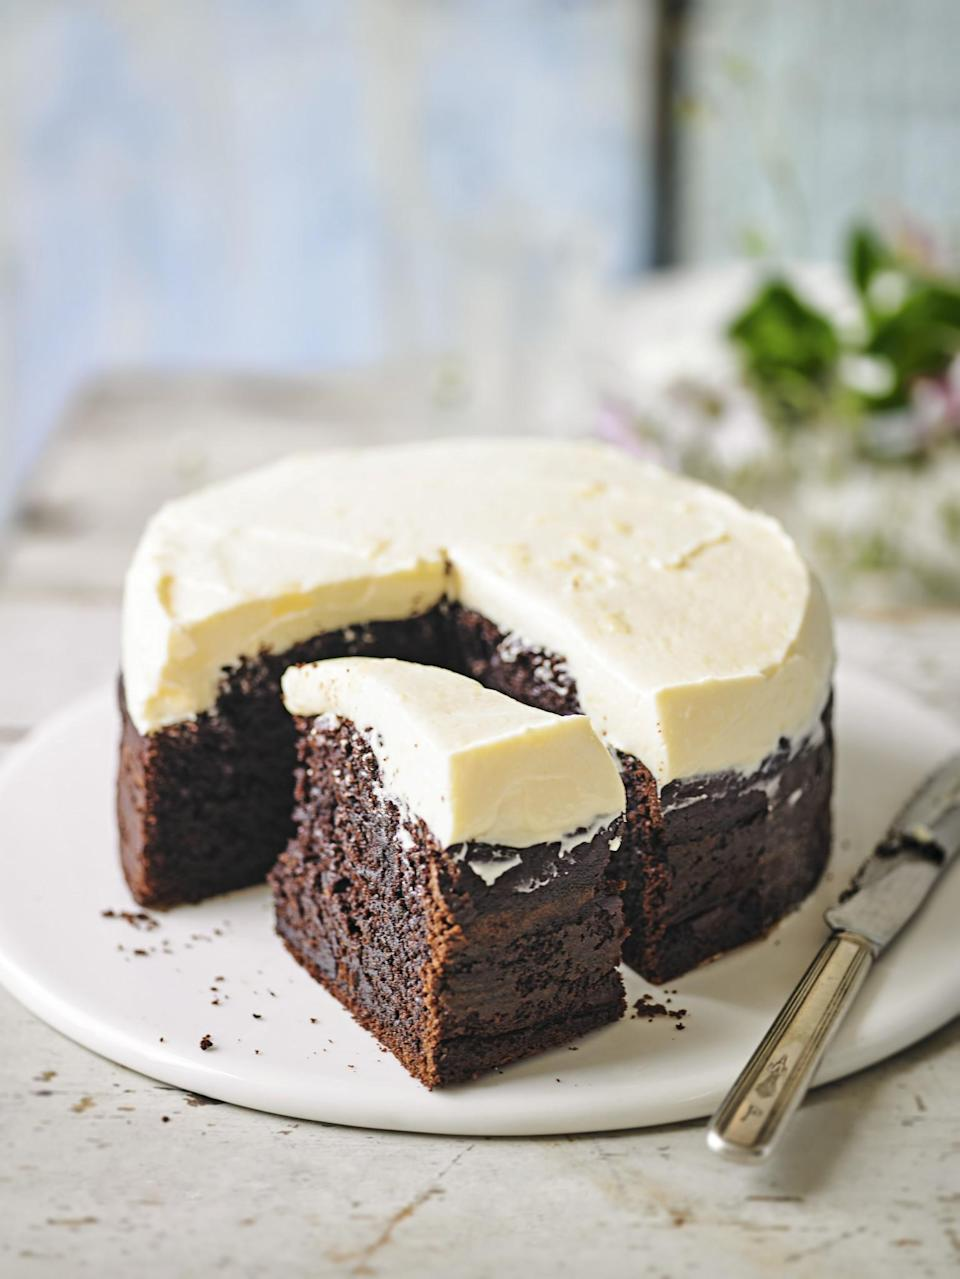 "<p>It's not all about the pies, puddings and stews. For a sweet treat try <a href=""http://www.waitrose.com/content/waitrose/en/home/recipes/recipe_directory/c/chocolate-guinnesscake.html"" rel=""nofollow noopener"" target=""_blank"" data-ylk=""slk:this recipe"" class=""link rapid-noclick-resp"">this recipe</a> for Chocolate Guinness Cake. It's even suitable for vegetarians. [Photo: <a href=""http://www.waitrose.com/baking"" rel=""nofollow noopener"" target=""_blank"" data-ylk=""slk:www.waitrose.com/baking"" class=""link rapid-noclick-resp"">www.waitrose.com/baking</a>] </p>"